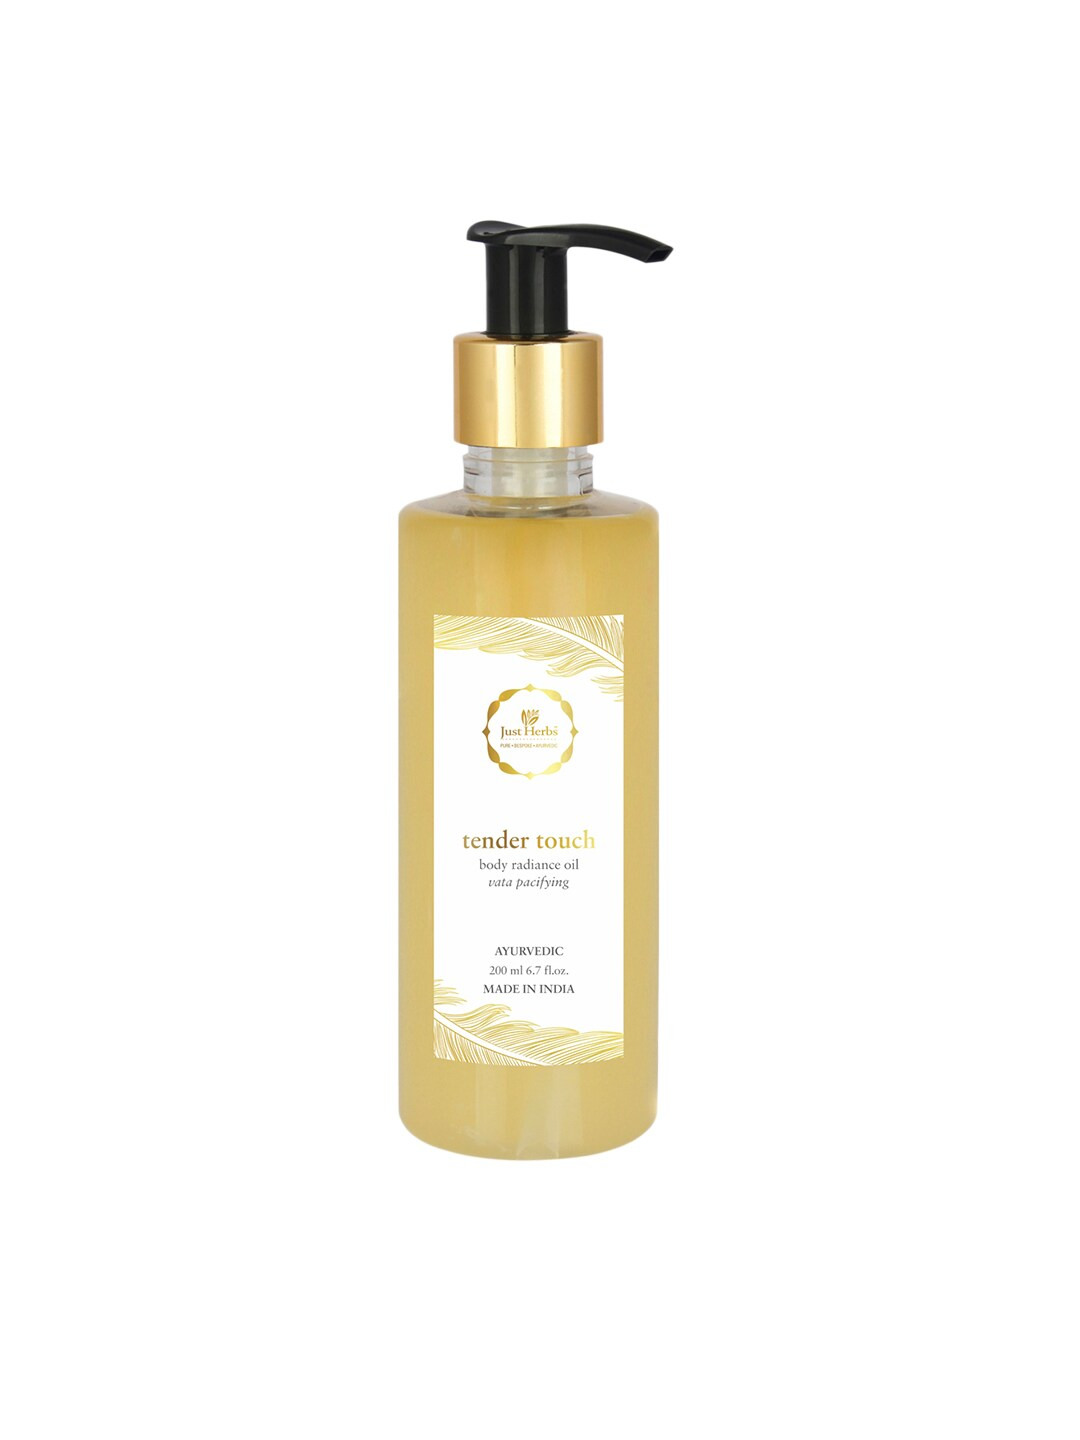 Just Herbs Unisex Tender Touch Body Radiance Oil 200 ml image